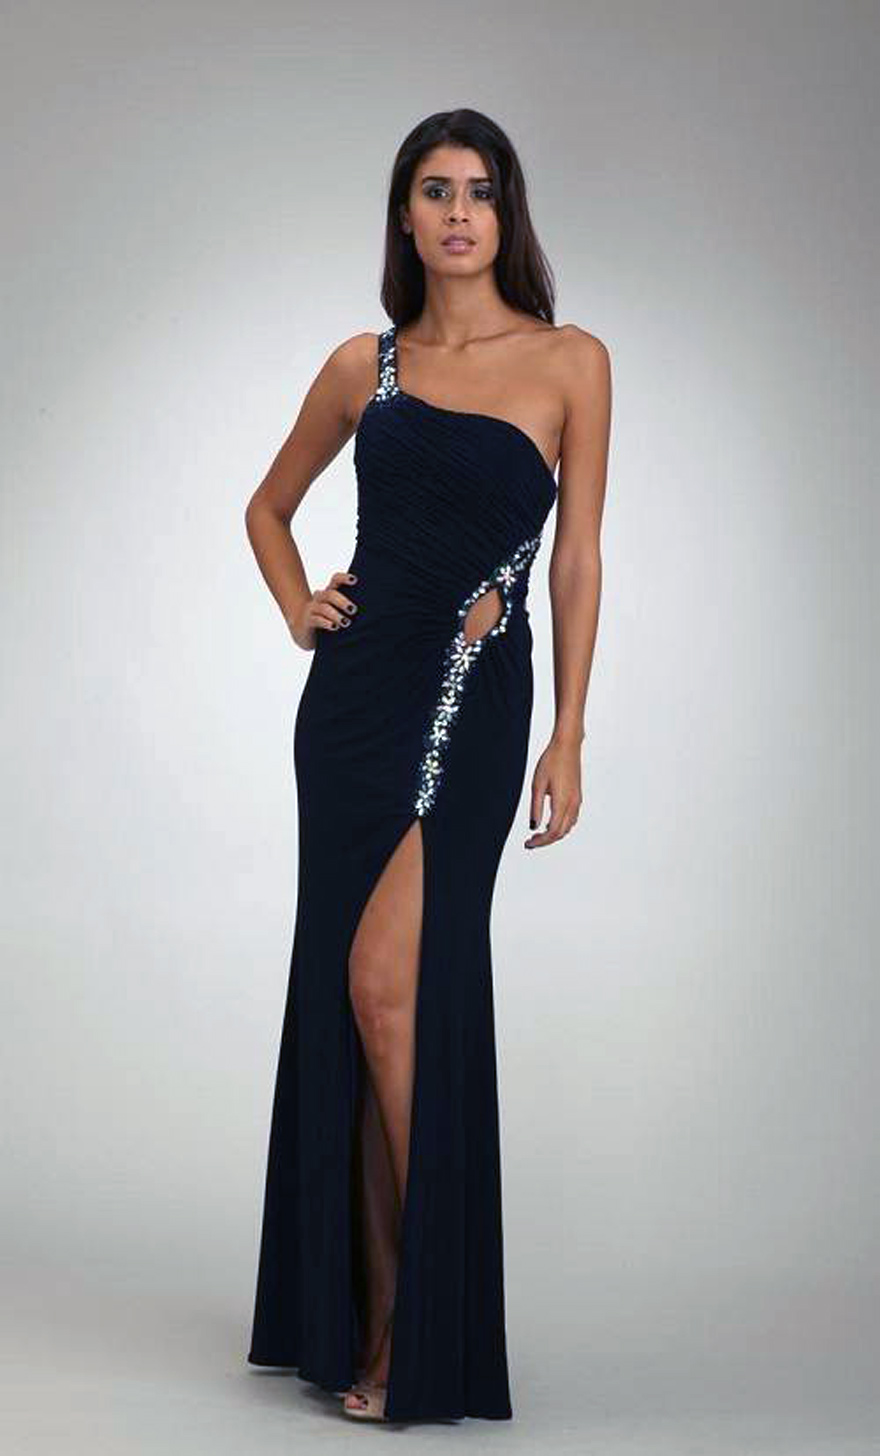 Long tight prom dresses images pictures fashion gallery for Skin tight wedding dresses